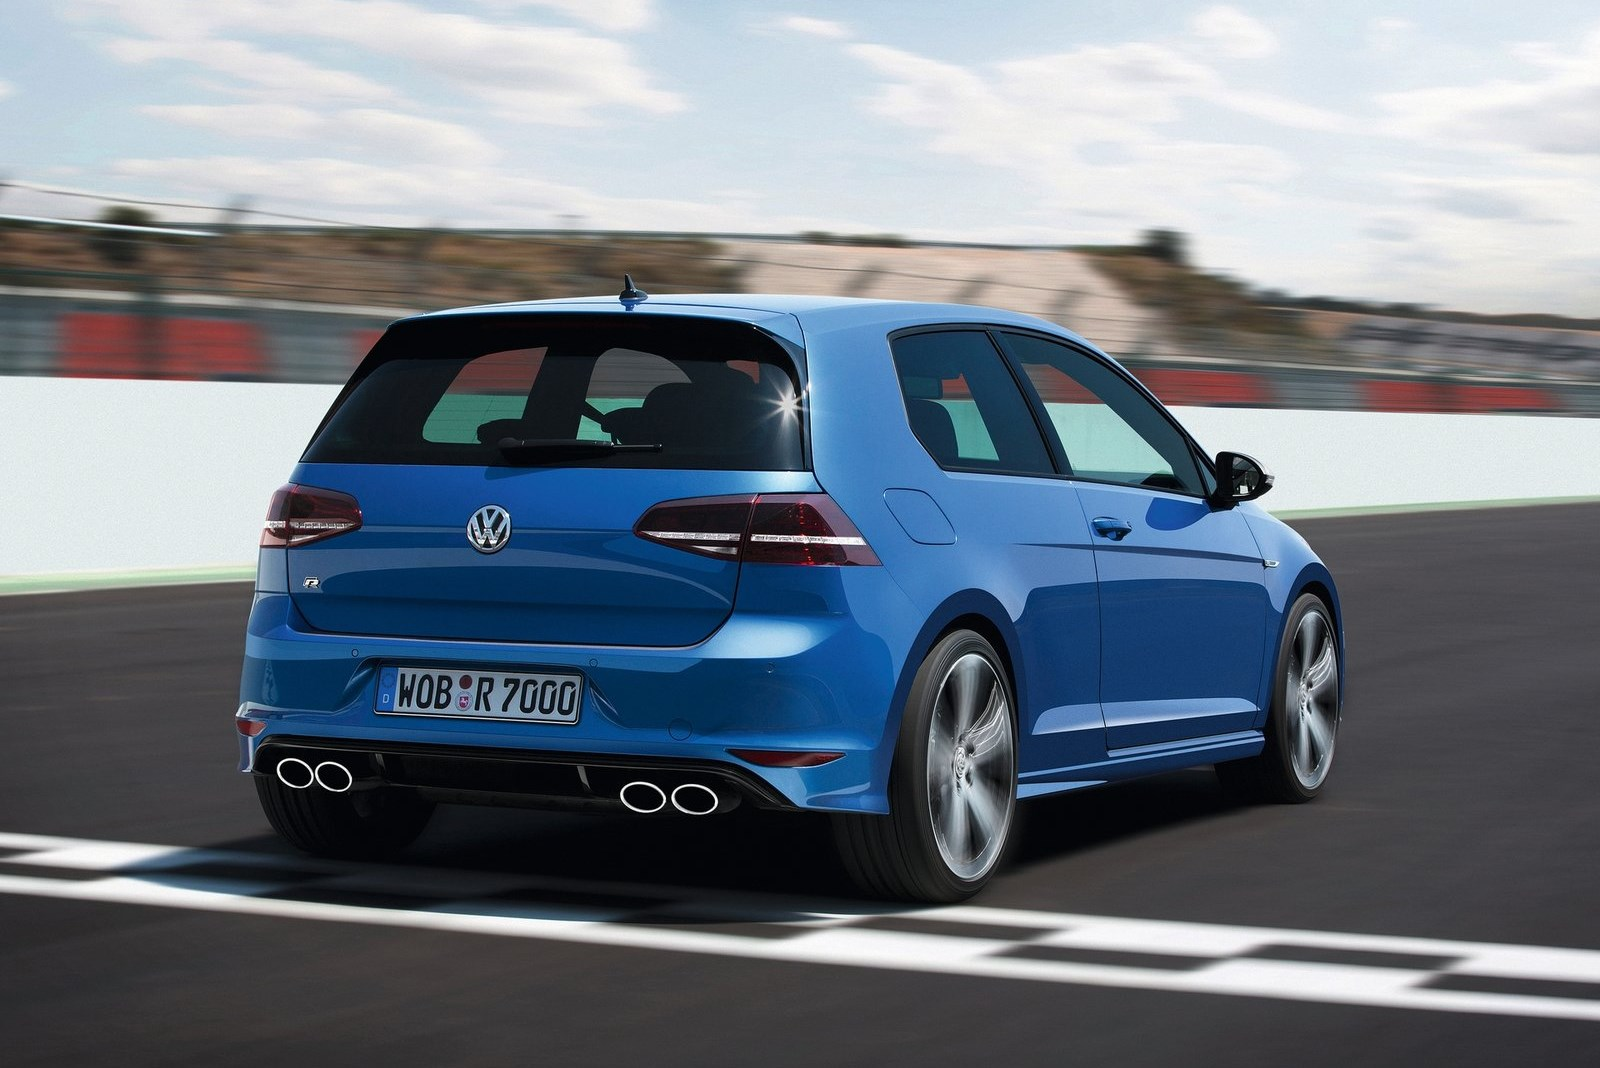 New 2014 Volkswagen Golf R Details And Pictures Video